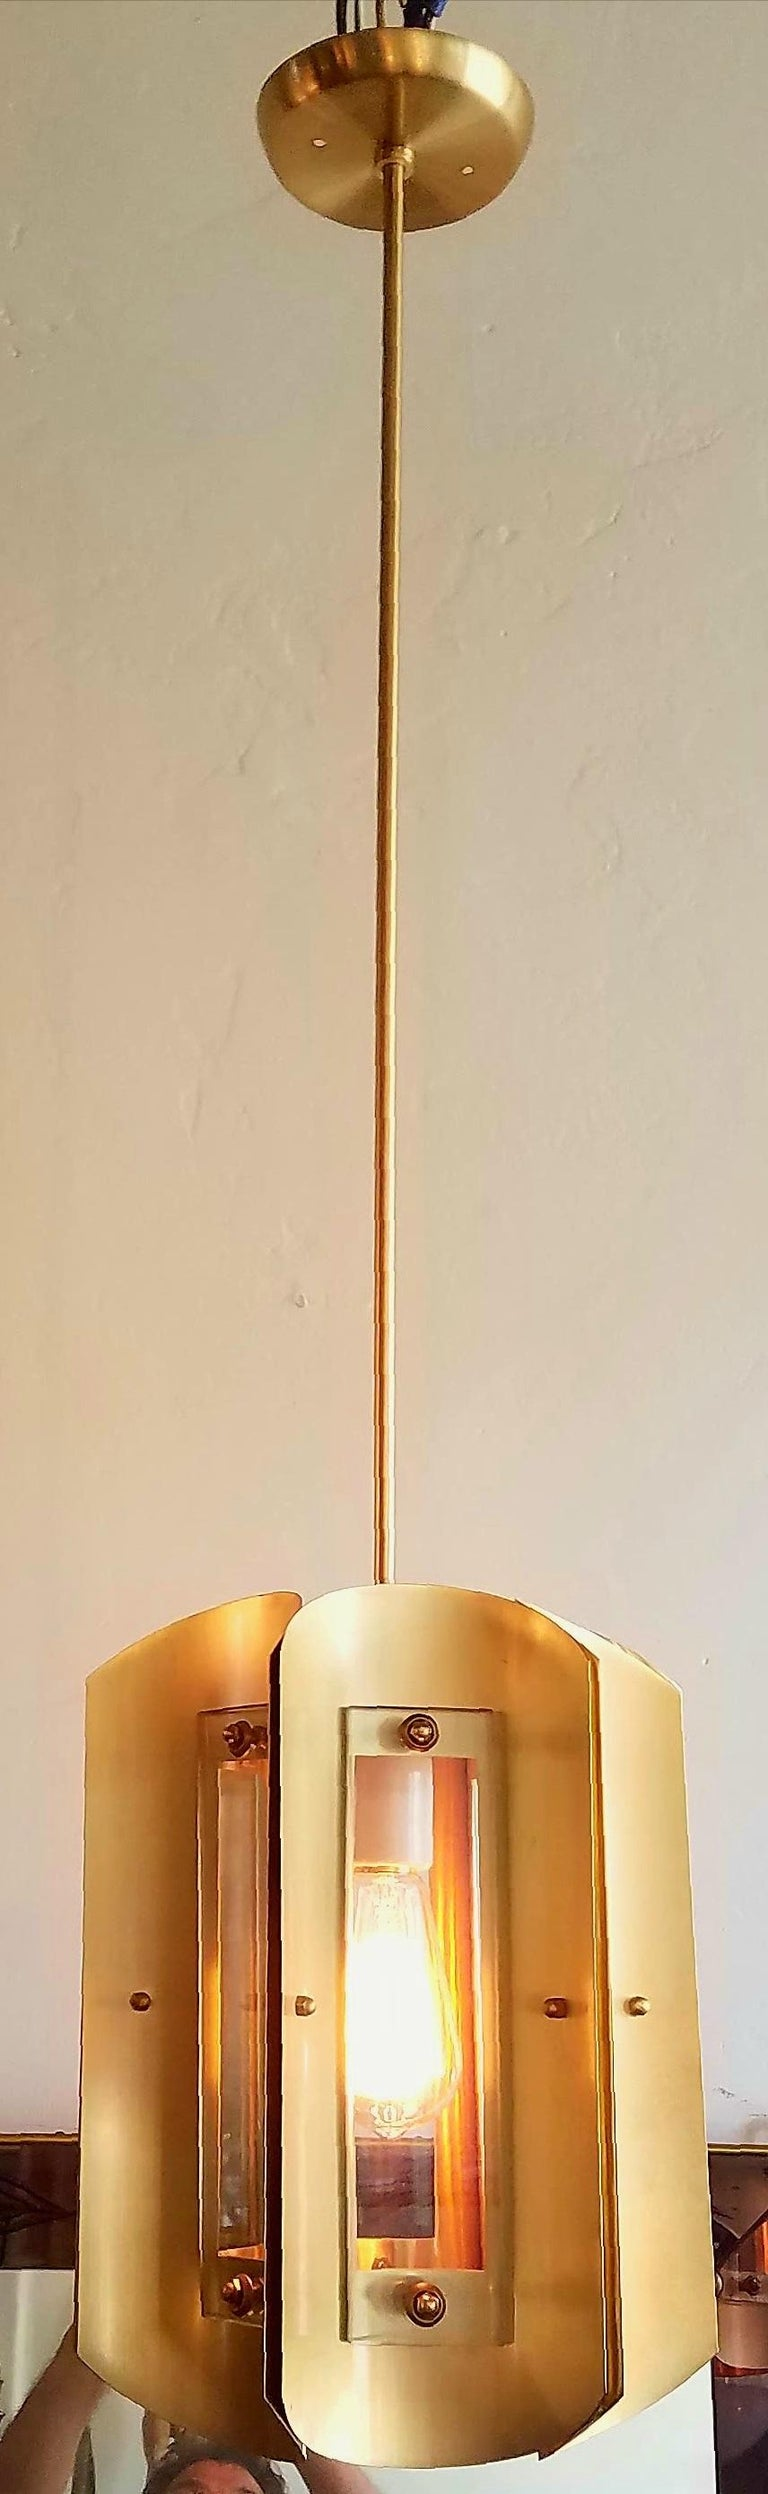 Pair of Italian Chandeliers in Style of Max Ingrand For Sale 1